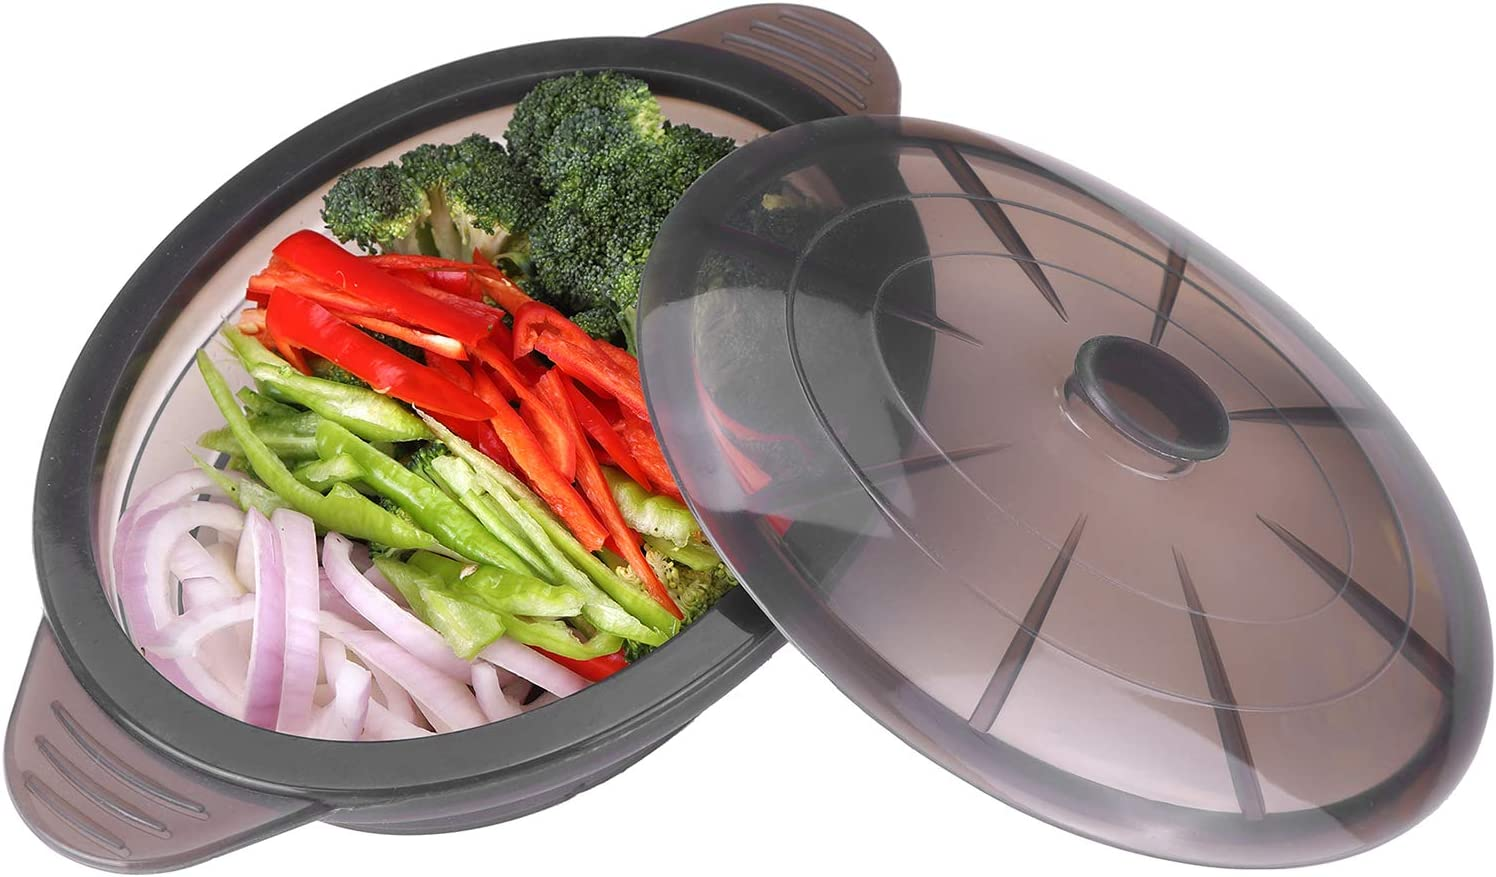 Silicon Steam Bowl Folding Bowl Microwave Steam Baking Bowl Roaster Red Color